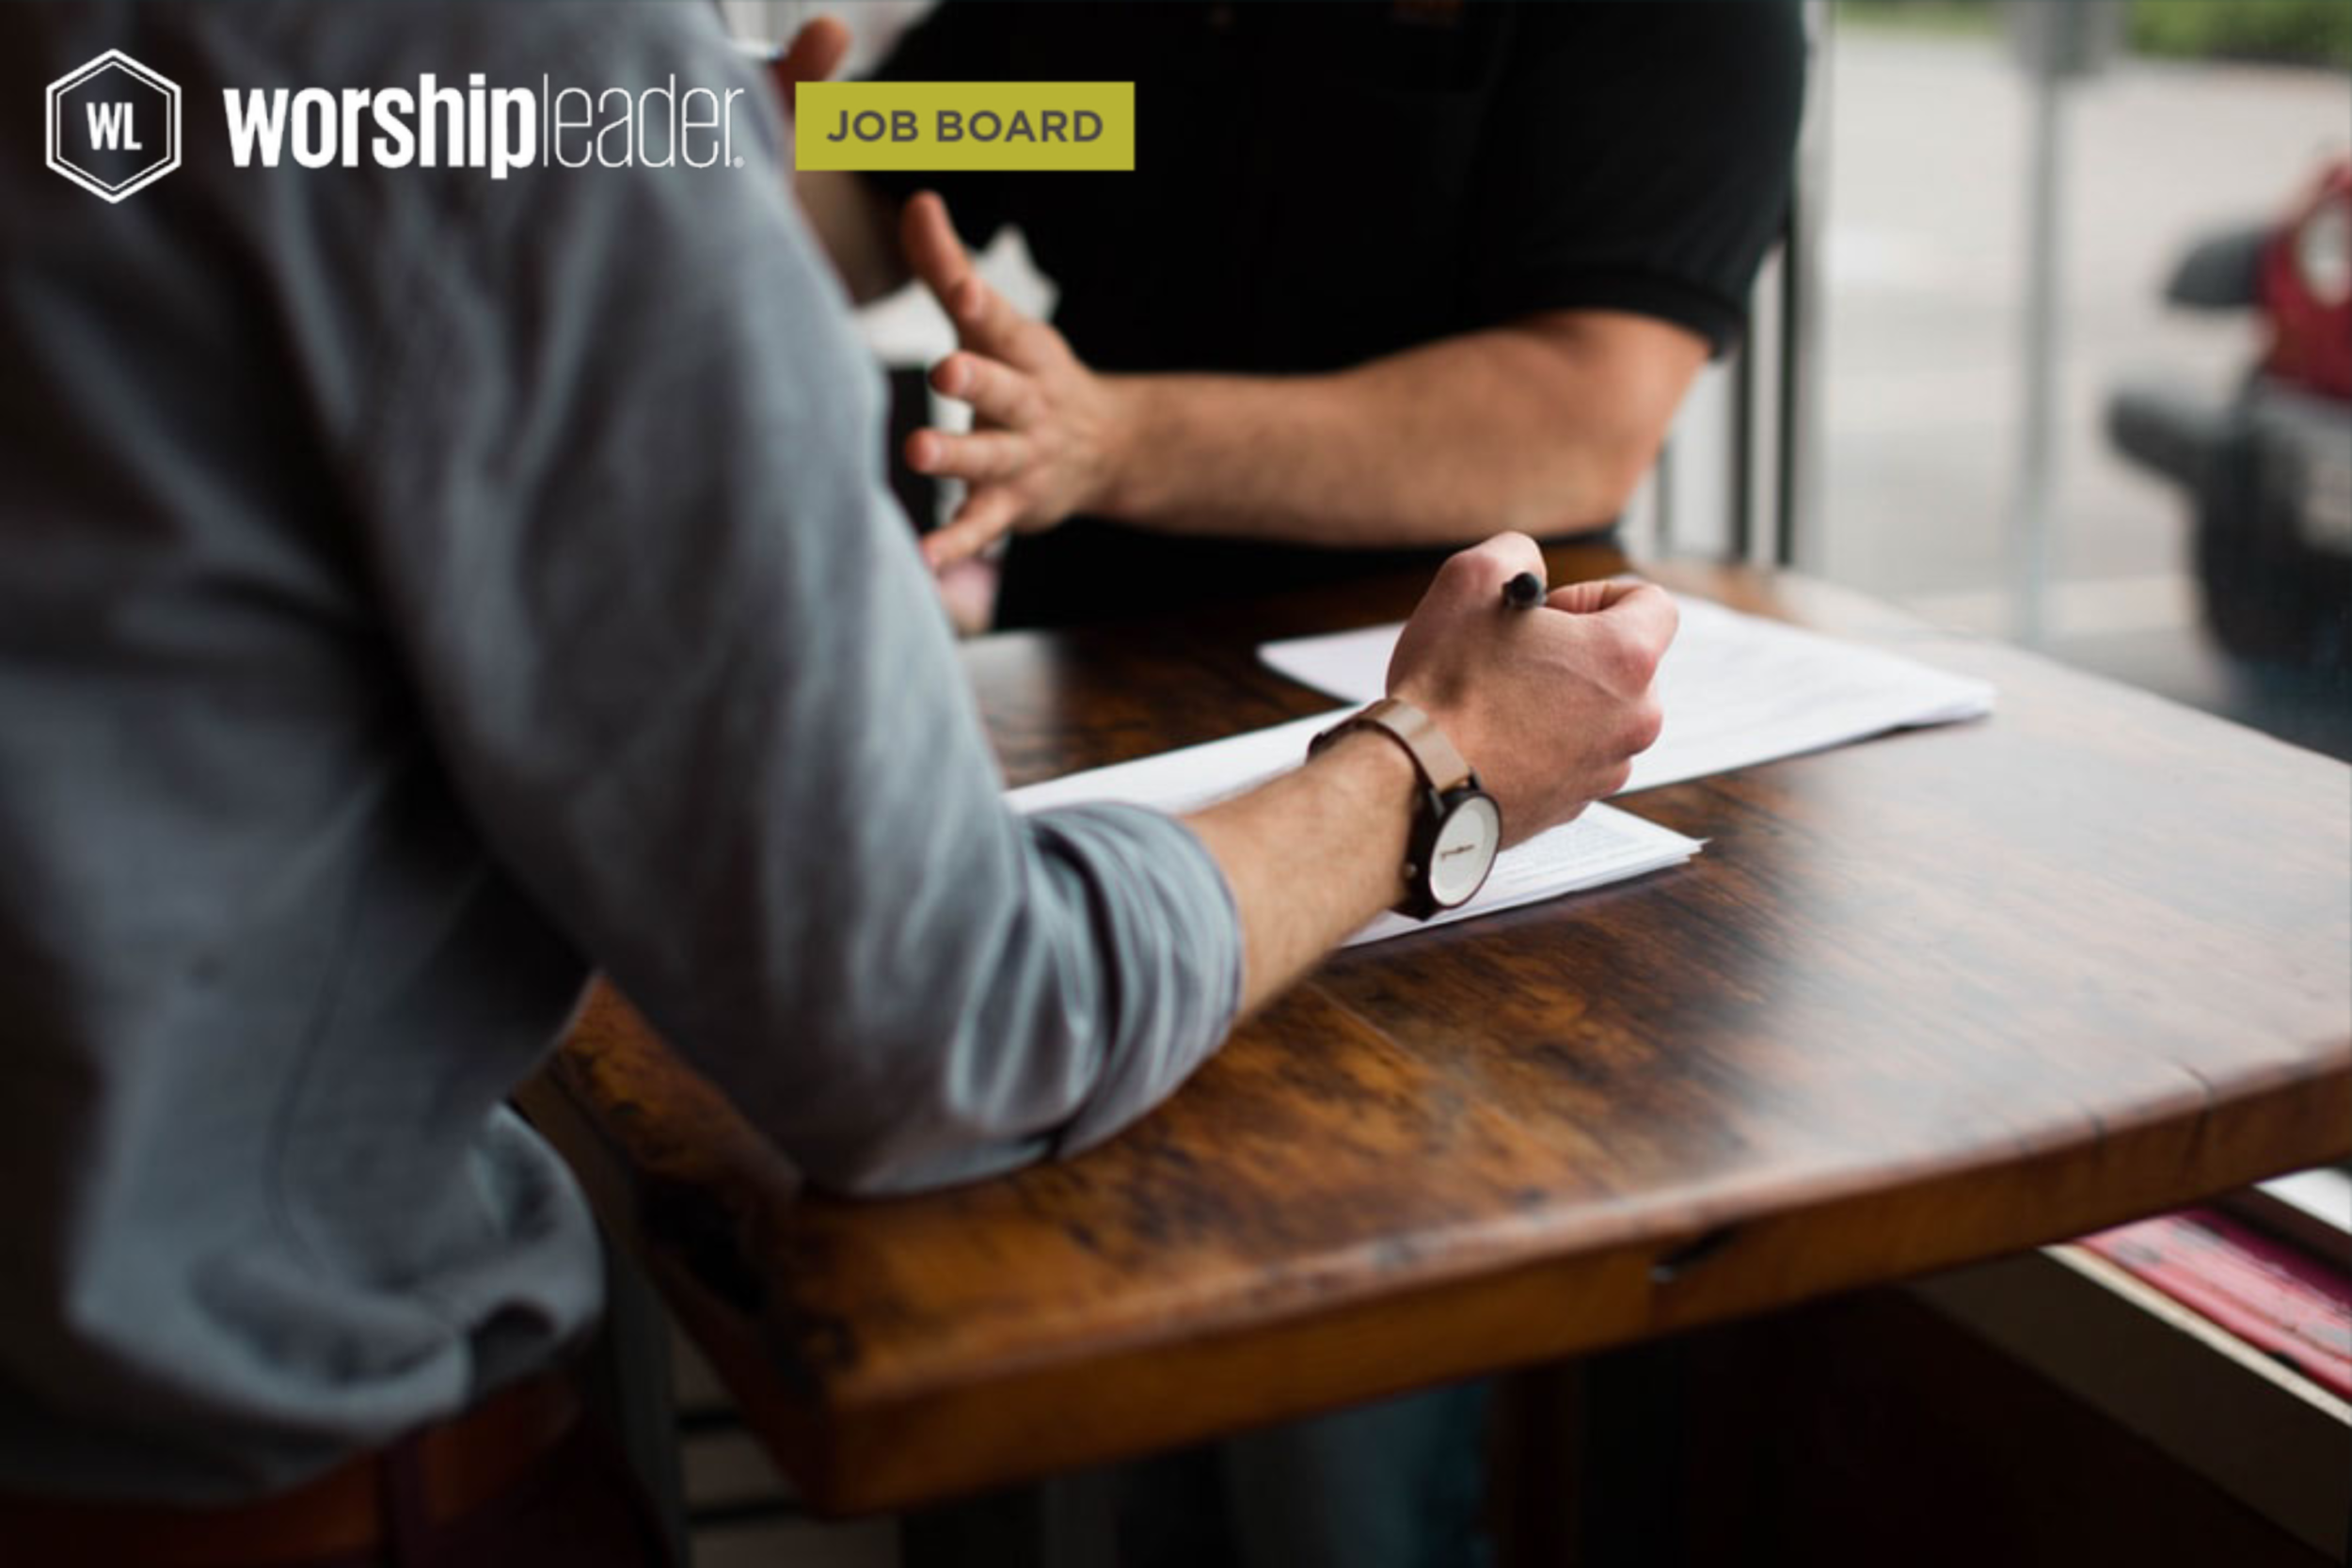 CREATED FOR YOU… - We take the needs of our readers seriously. We created a place where people can connect with other people in hopes to get exactly what they need. So, are you looking to expand your church team? From admin to your worship team, post your job openings on the Worship Leader Job Board.